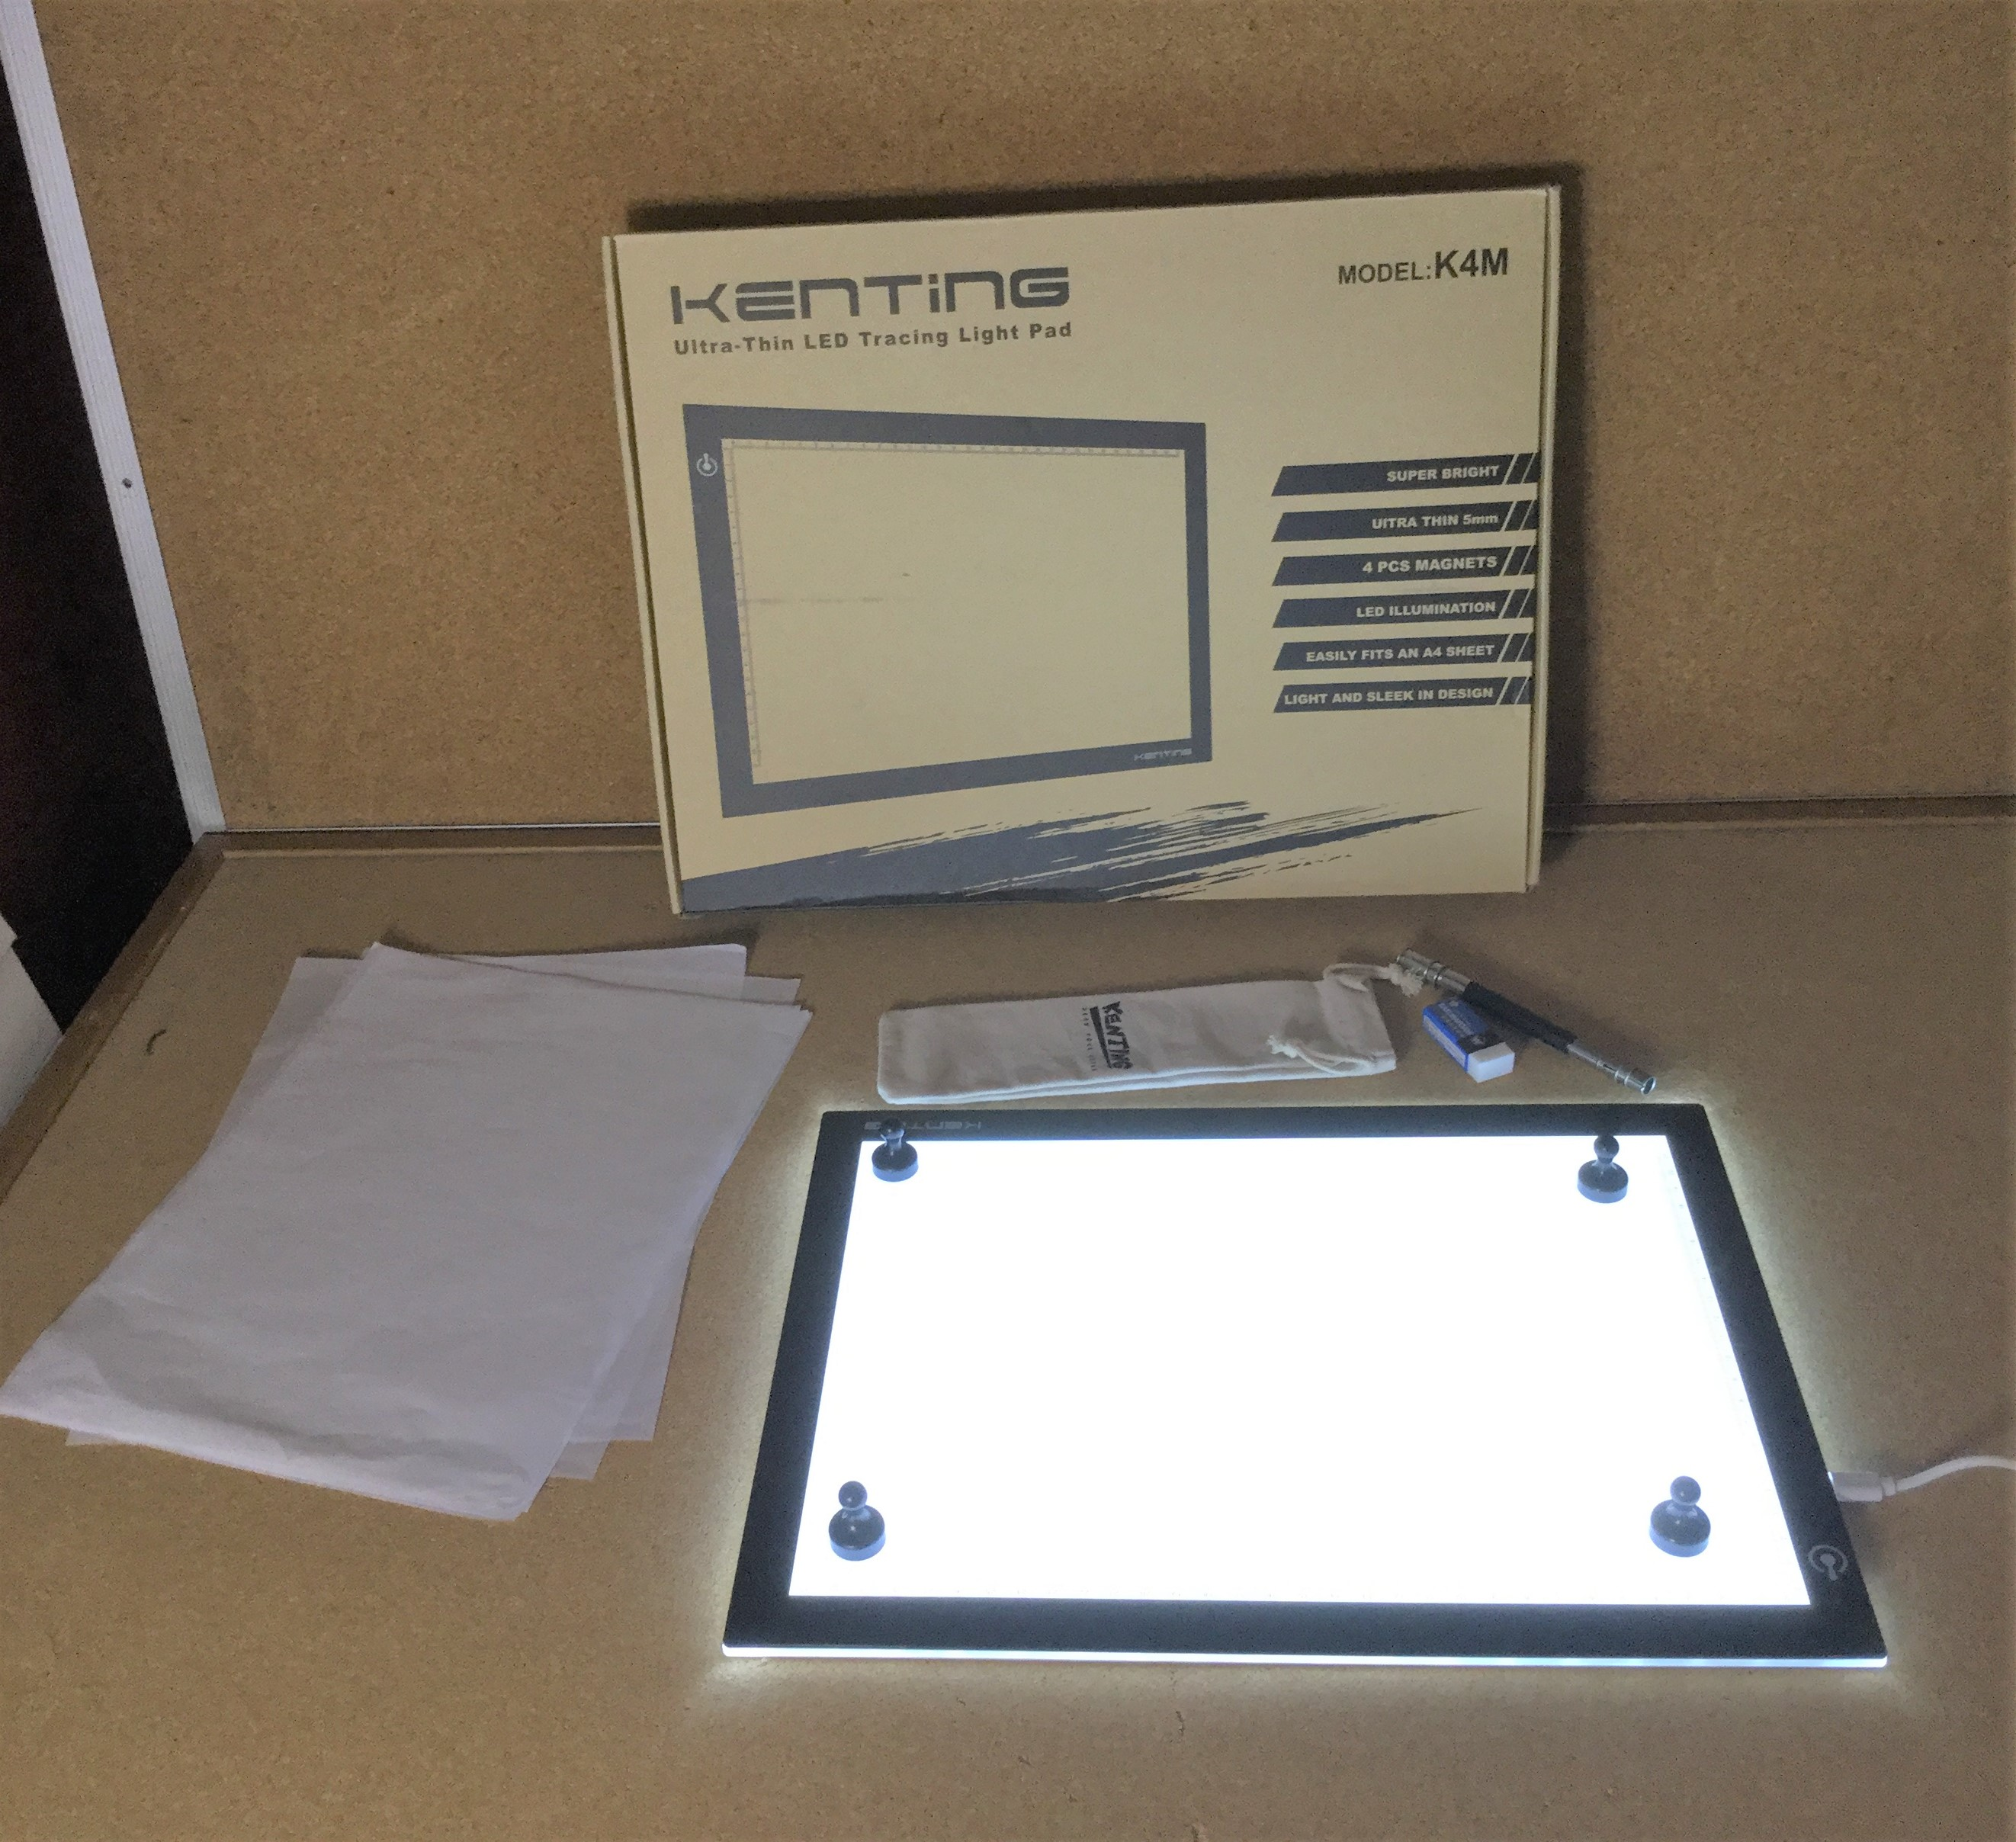 lightweight and portable LED tracing light